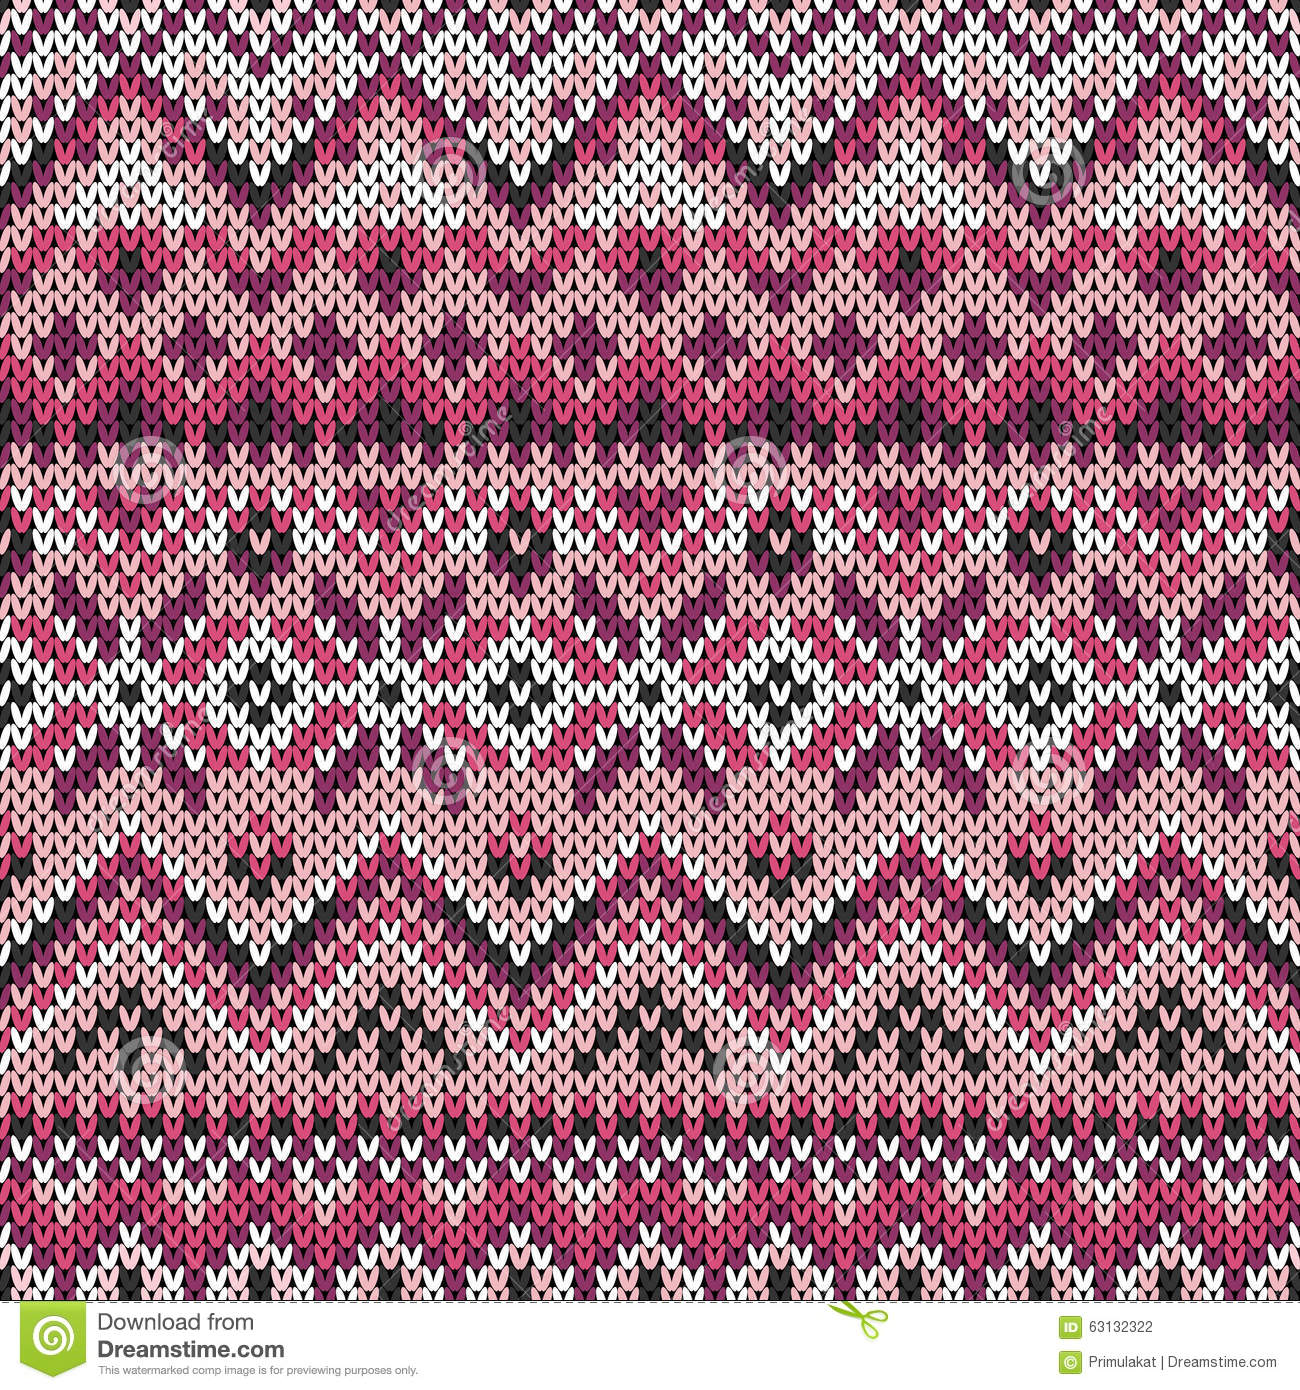 Vector Seamless Lilac Ornament On Knitted Texture Stock Vector - Image: 63132322